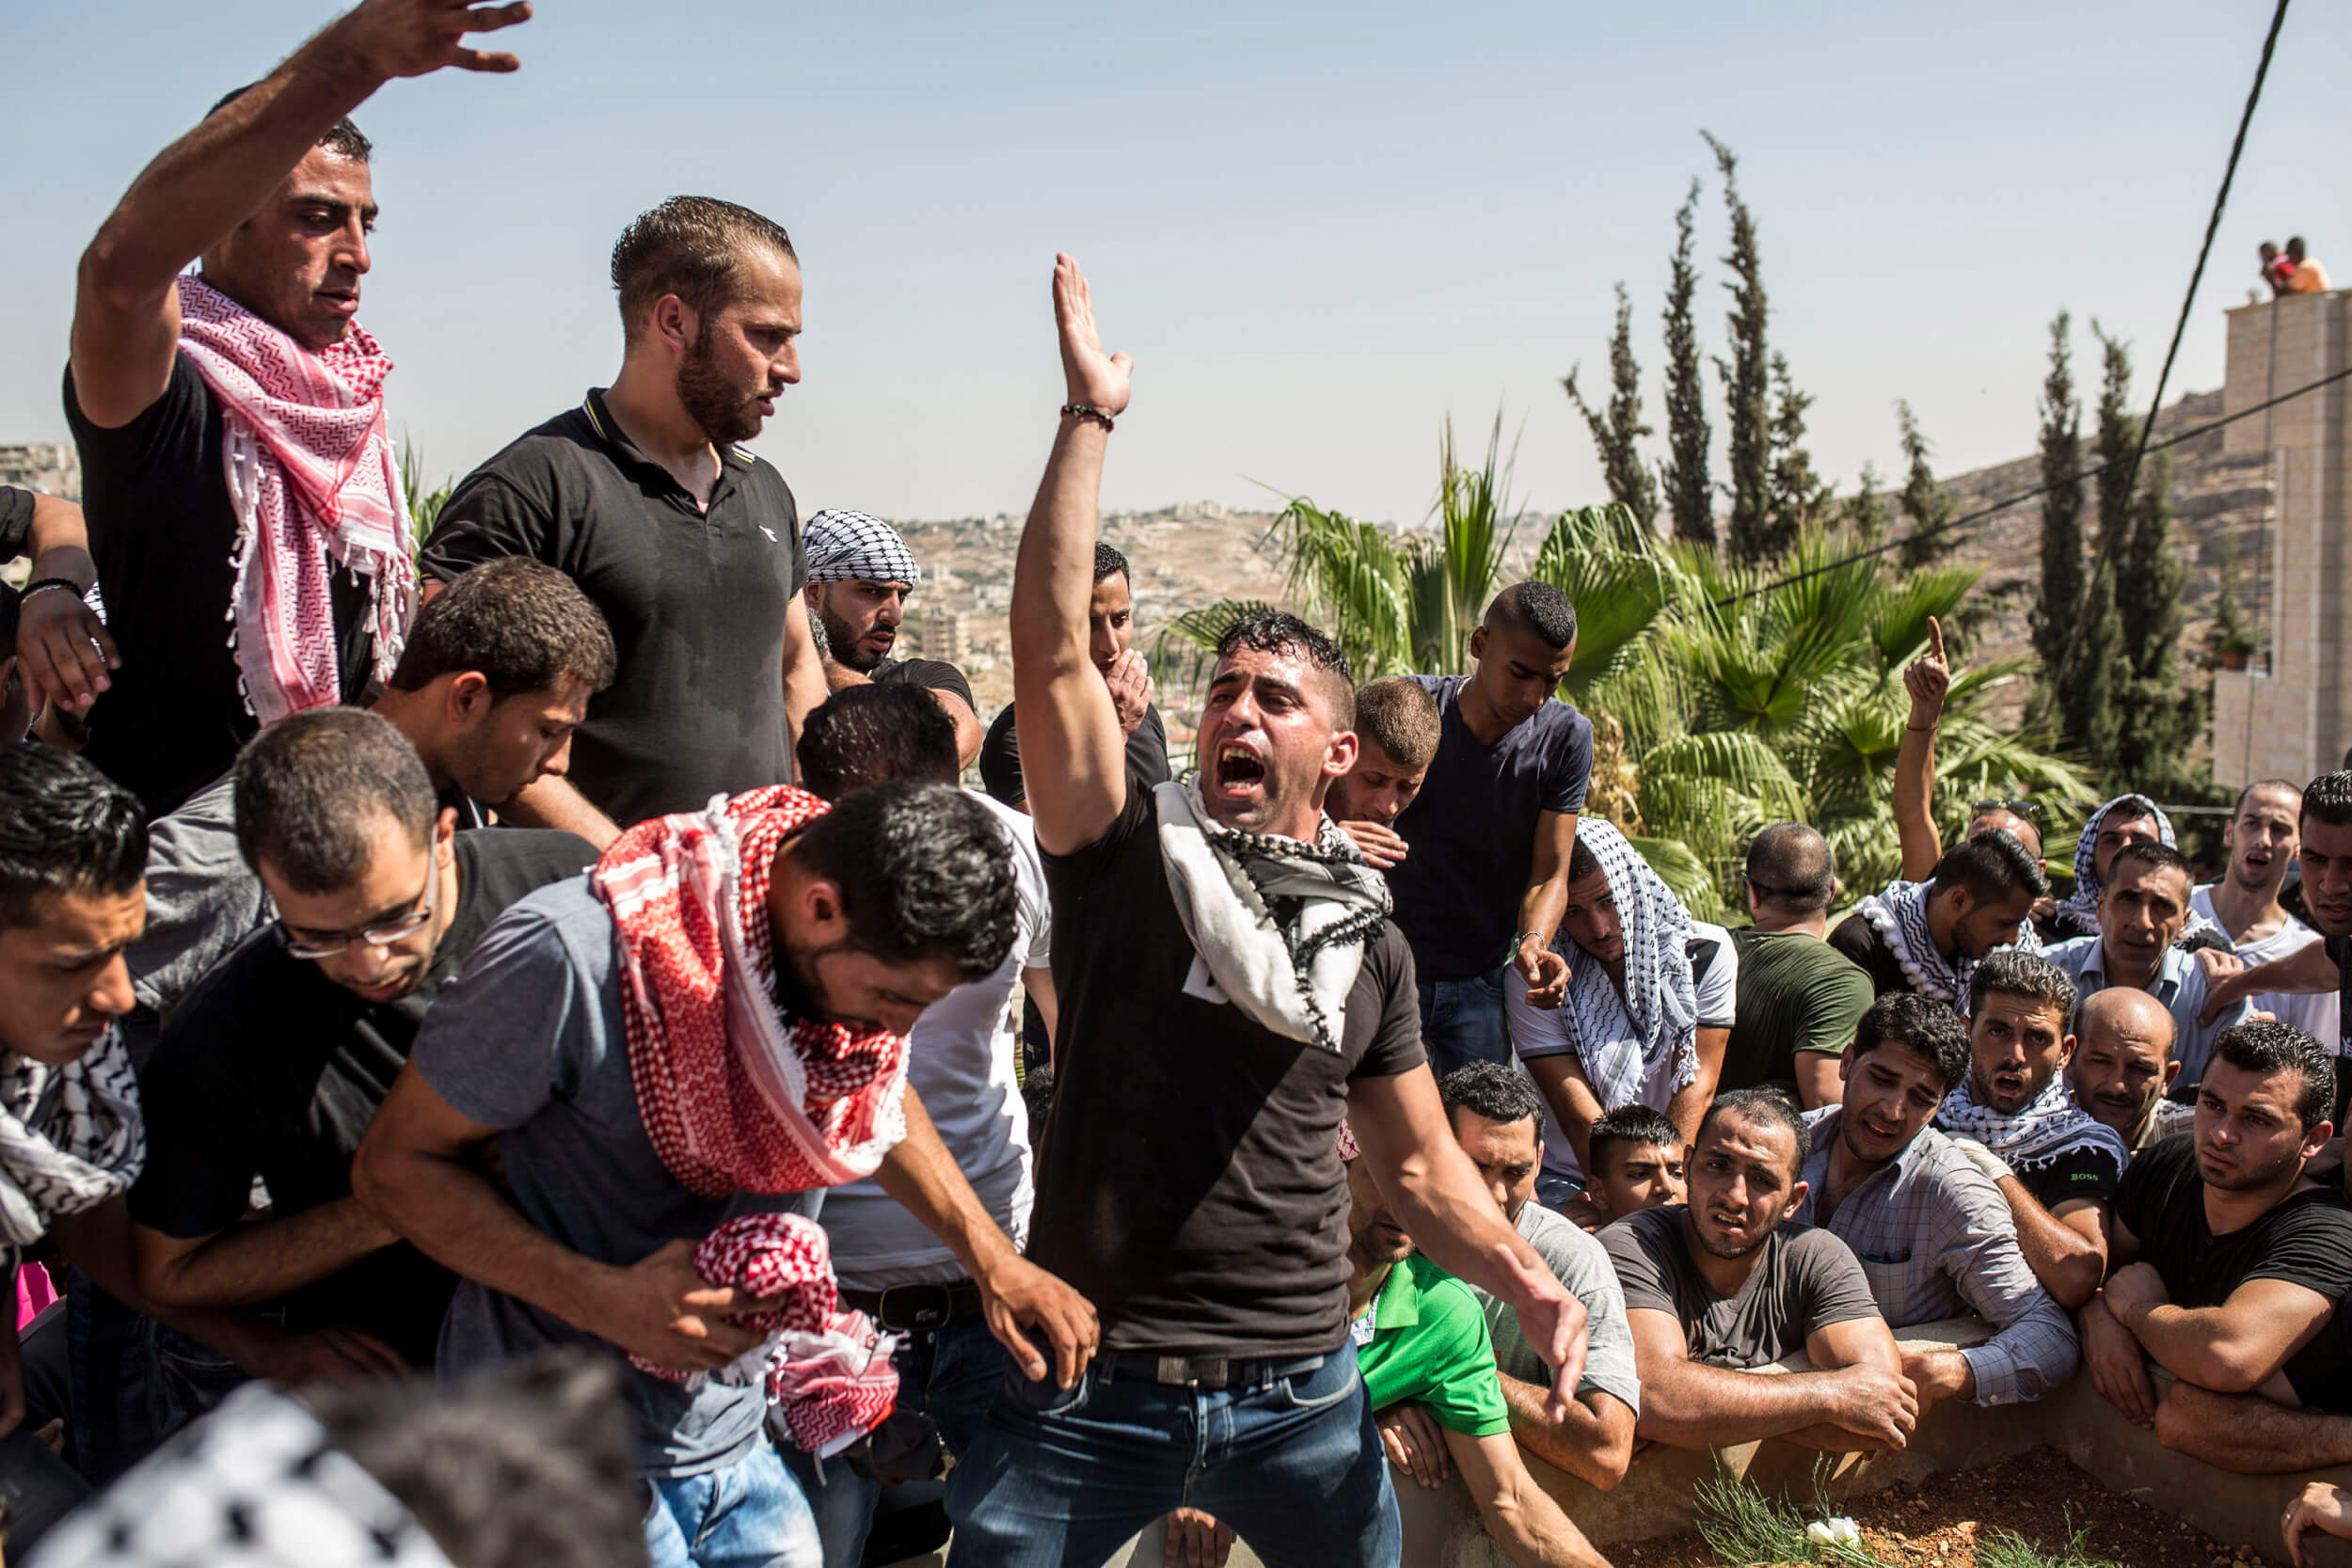 'We are so sad. He was my friend. The Israeli soldiers do not see us as humans.', says a young Palestinian who attended the funeral. (Photo: Anne Paq)